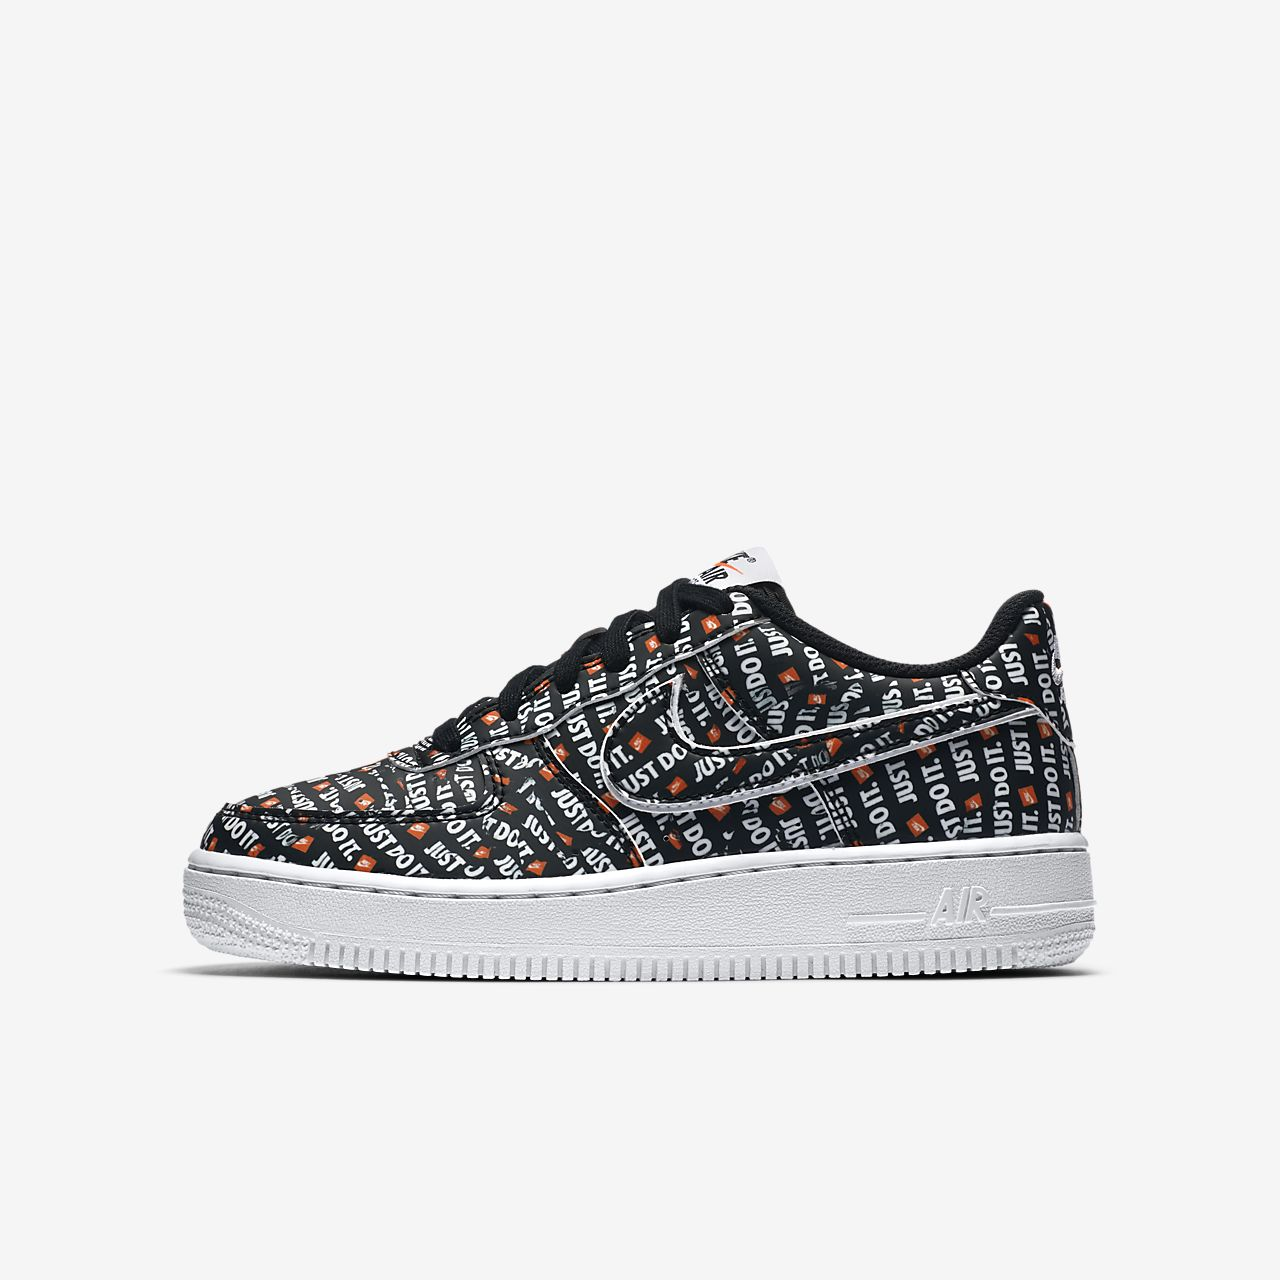 just do it nike air forces Off 63%